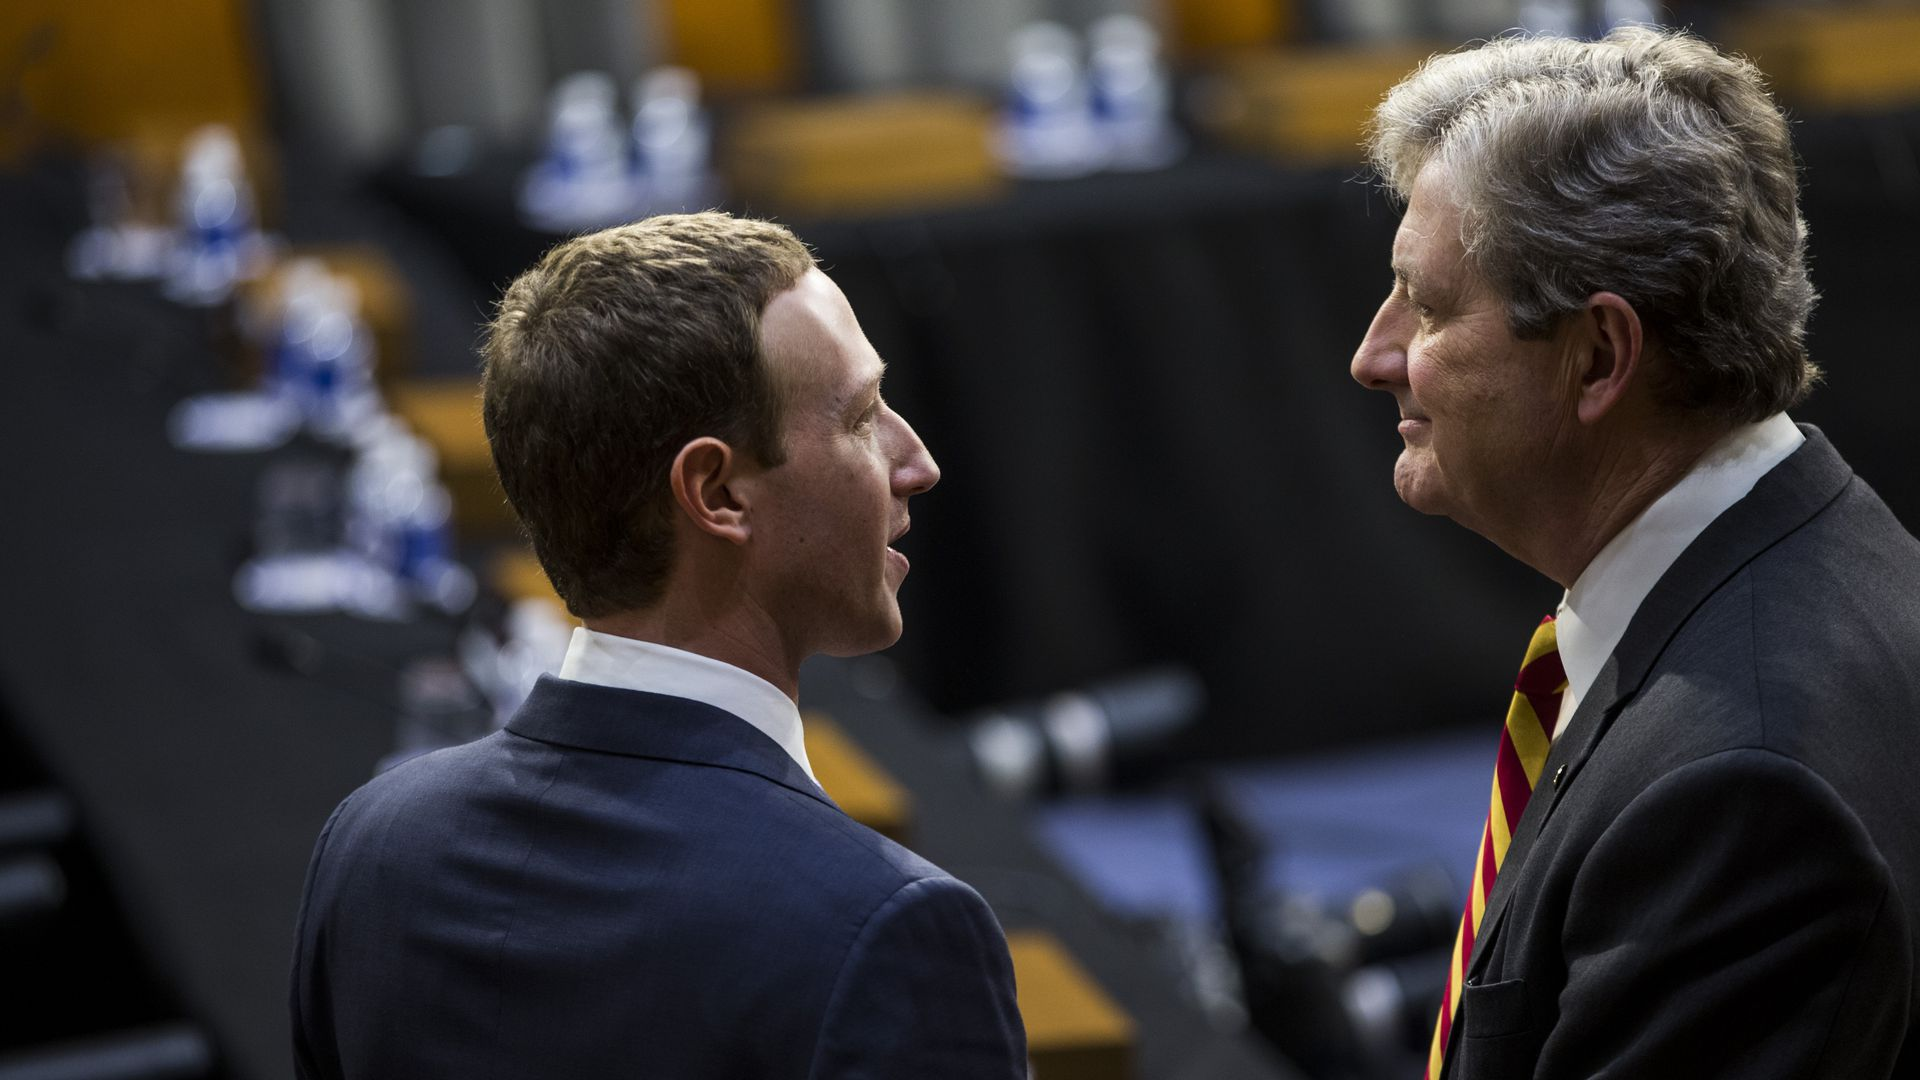 Mark Zuckerberg and Sen. John Kennedy (R-LA)